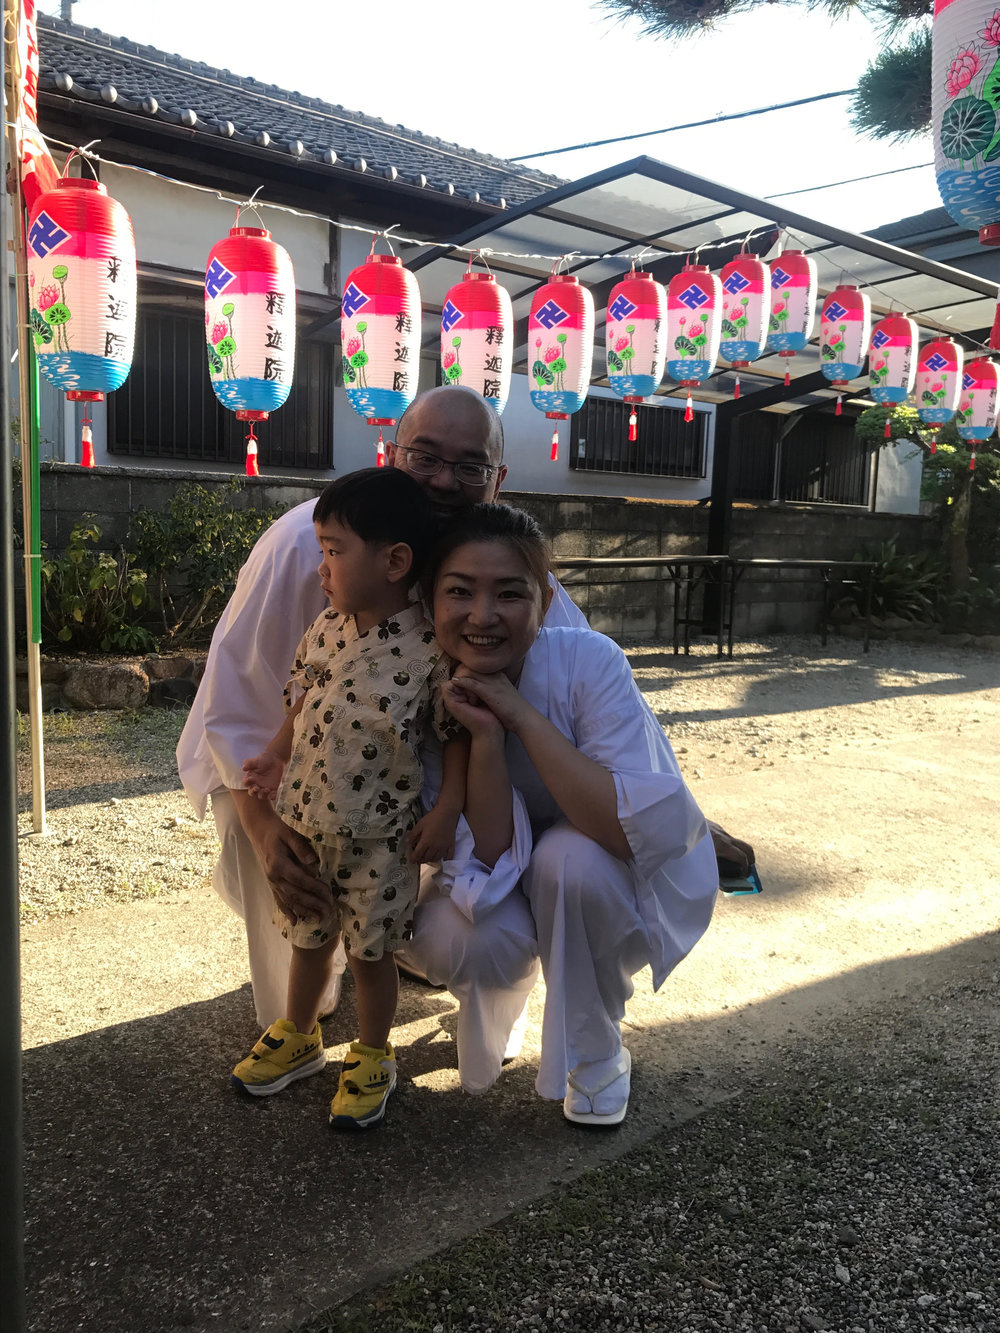 Just another day in the office: Saho's family outside the temple during preparations for children's festival day